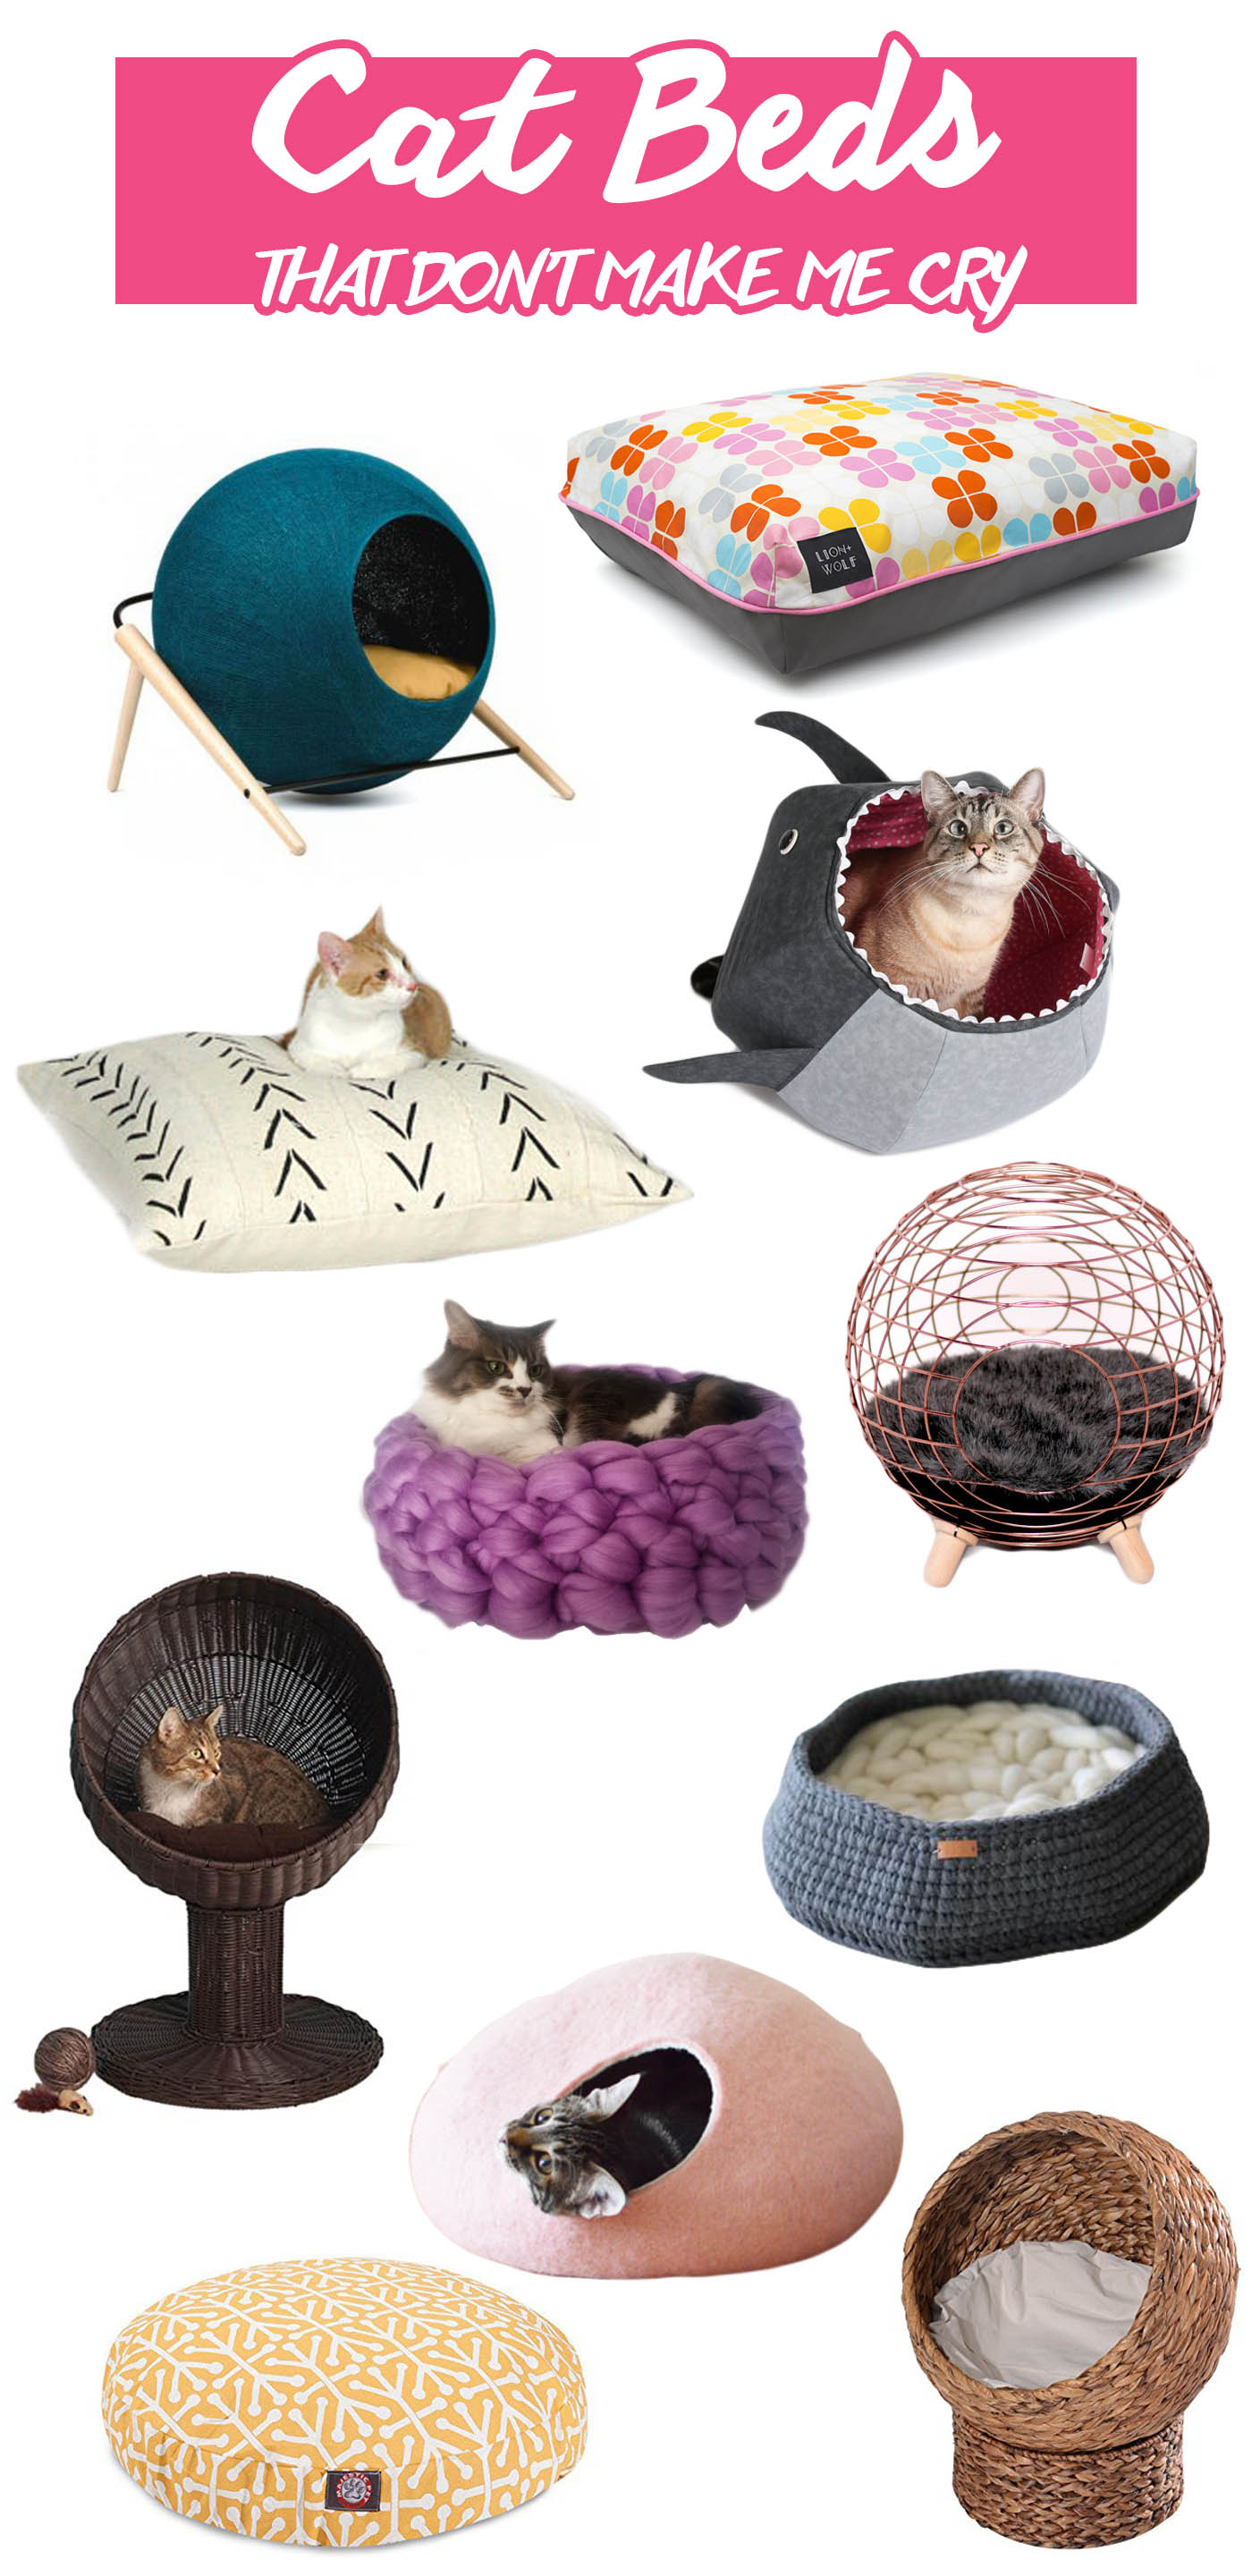 Modern cat beds that don't make me cry. | Unique cat beds that won't clash with your decor. | Modern Cat Supplies that Don't Make Me Cry